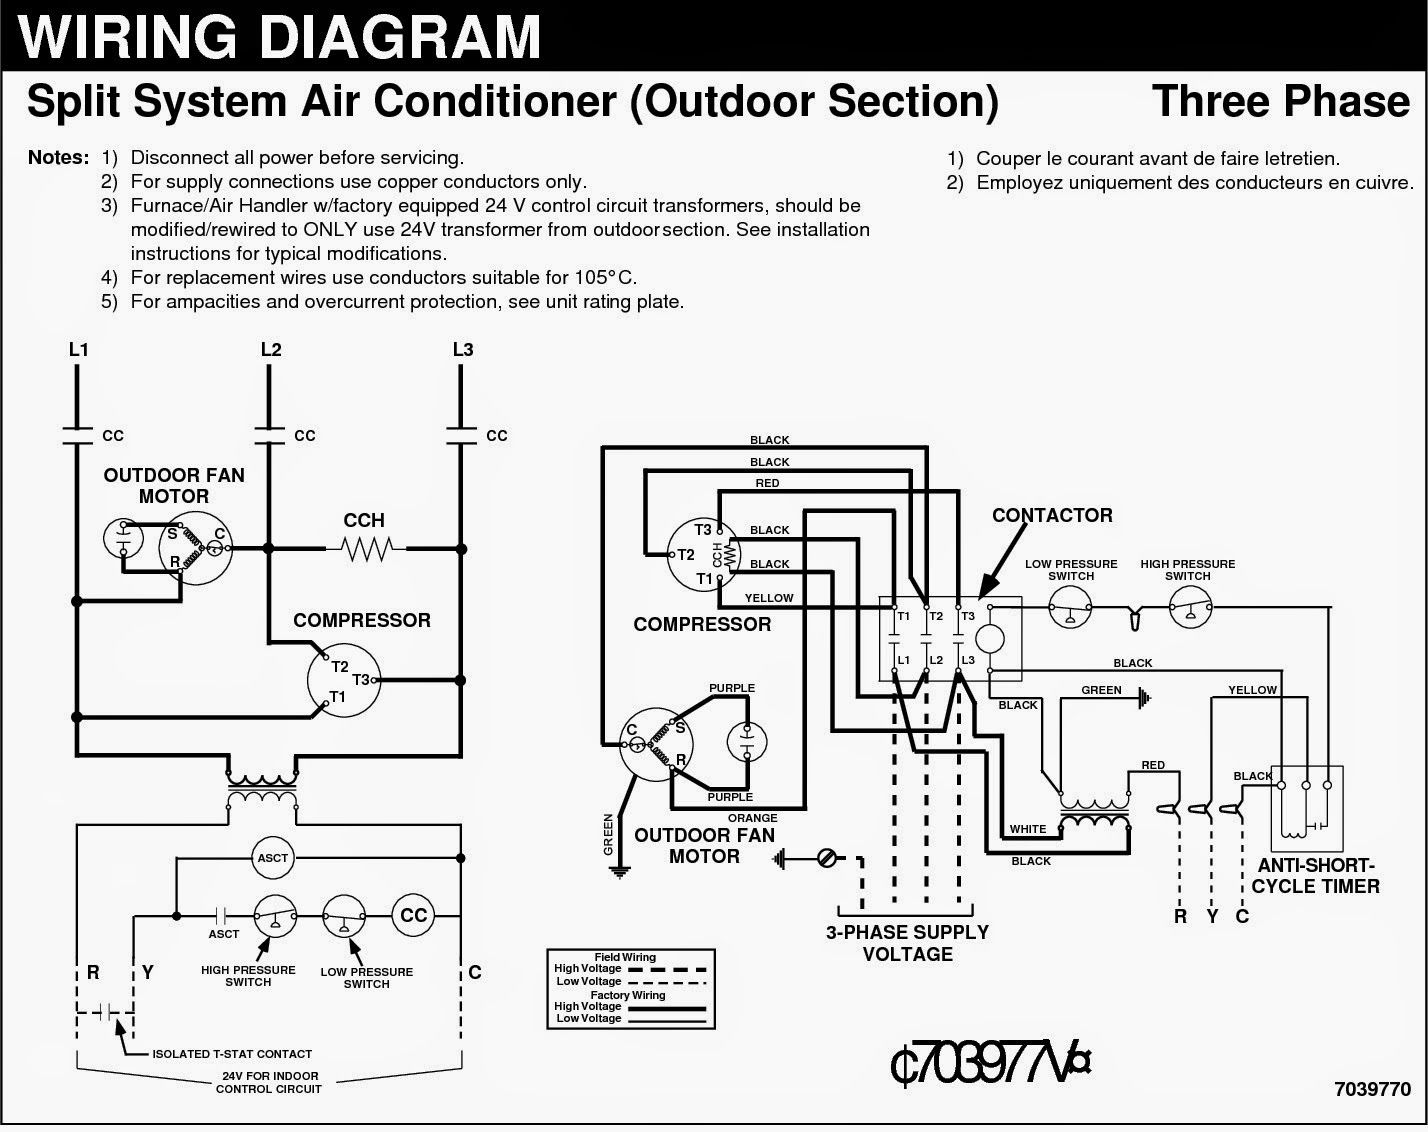 image result for wiring diagram of split ac 380 volts 10 tonsimage result for wiring diagram of split ac 380 volts 10 tons